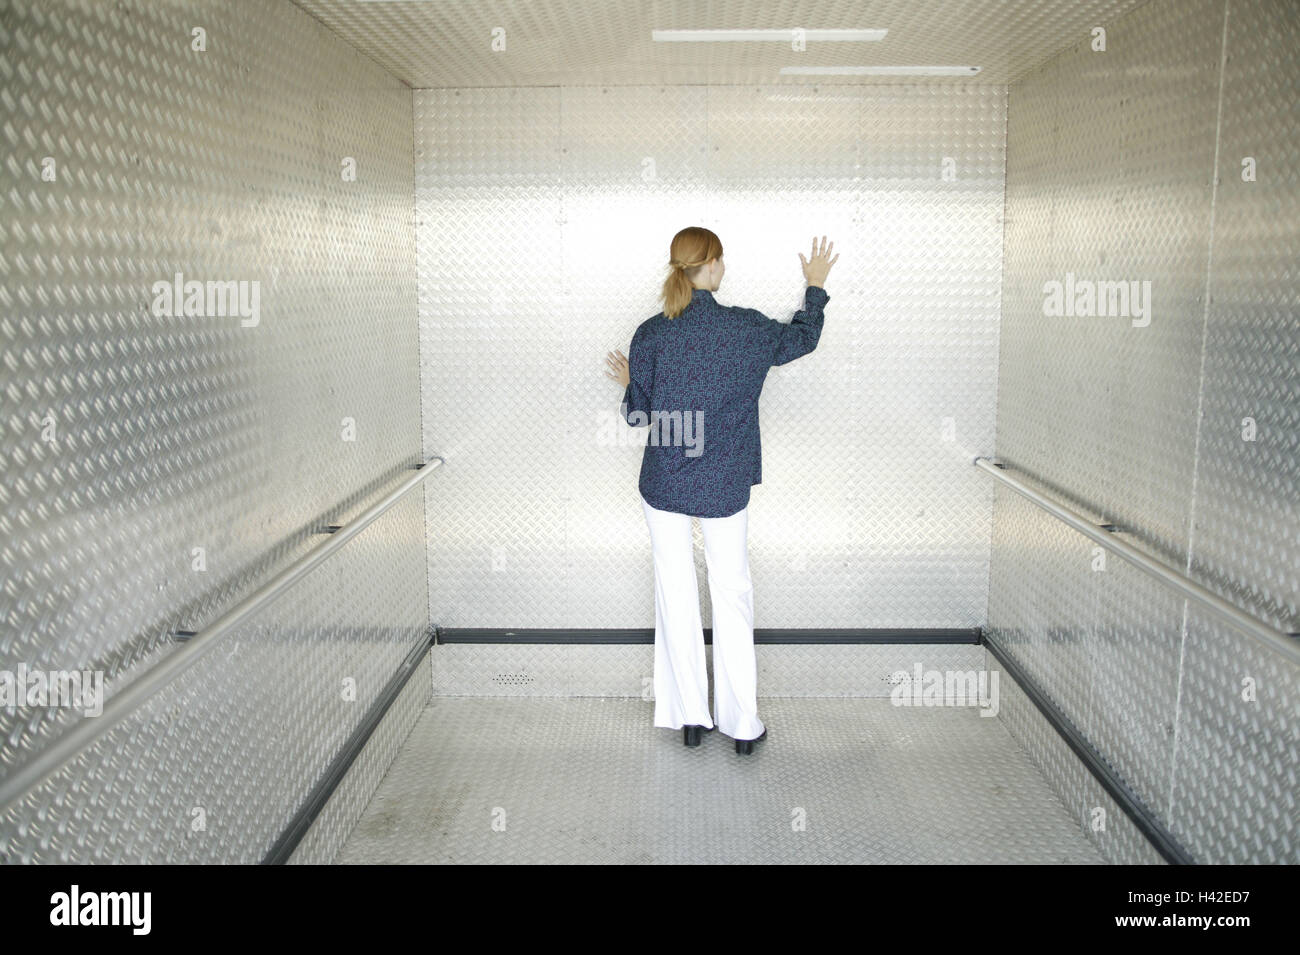 Lift, woman, young, back view, helplessly, hopelessly, 15 - 20 years, young persons, trainees, trainee, lift, lift, - Stock Image